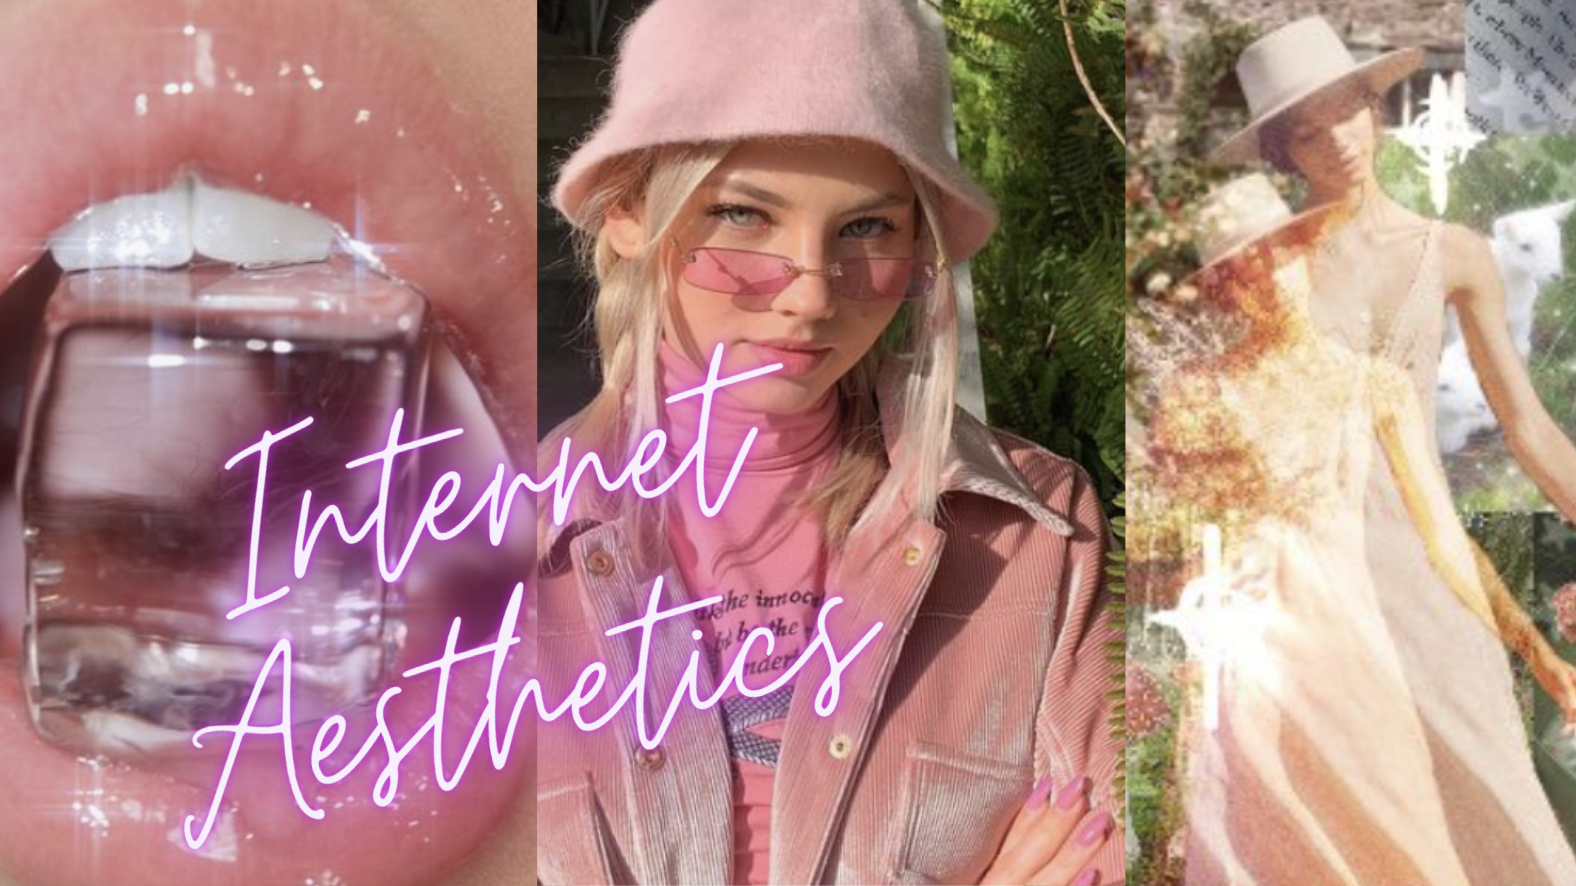 The 6 Trendy Aesthetics that Took the Internet by Storm : Which Aesthetic Suits You Best?